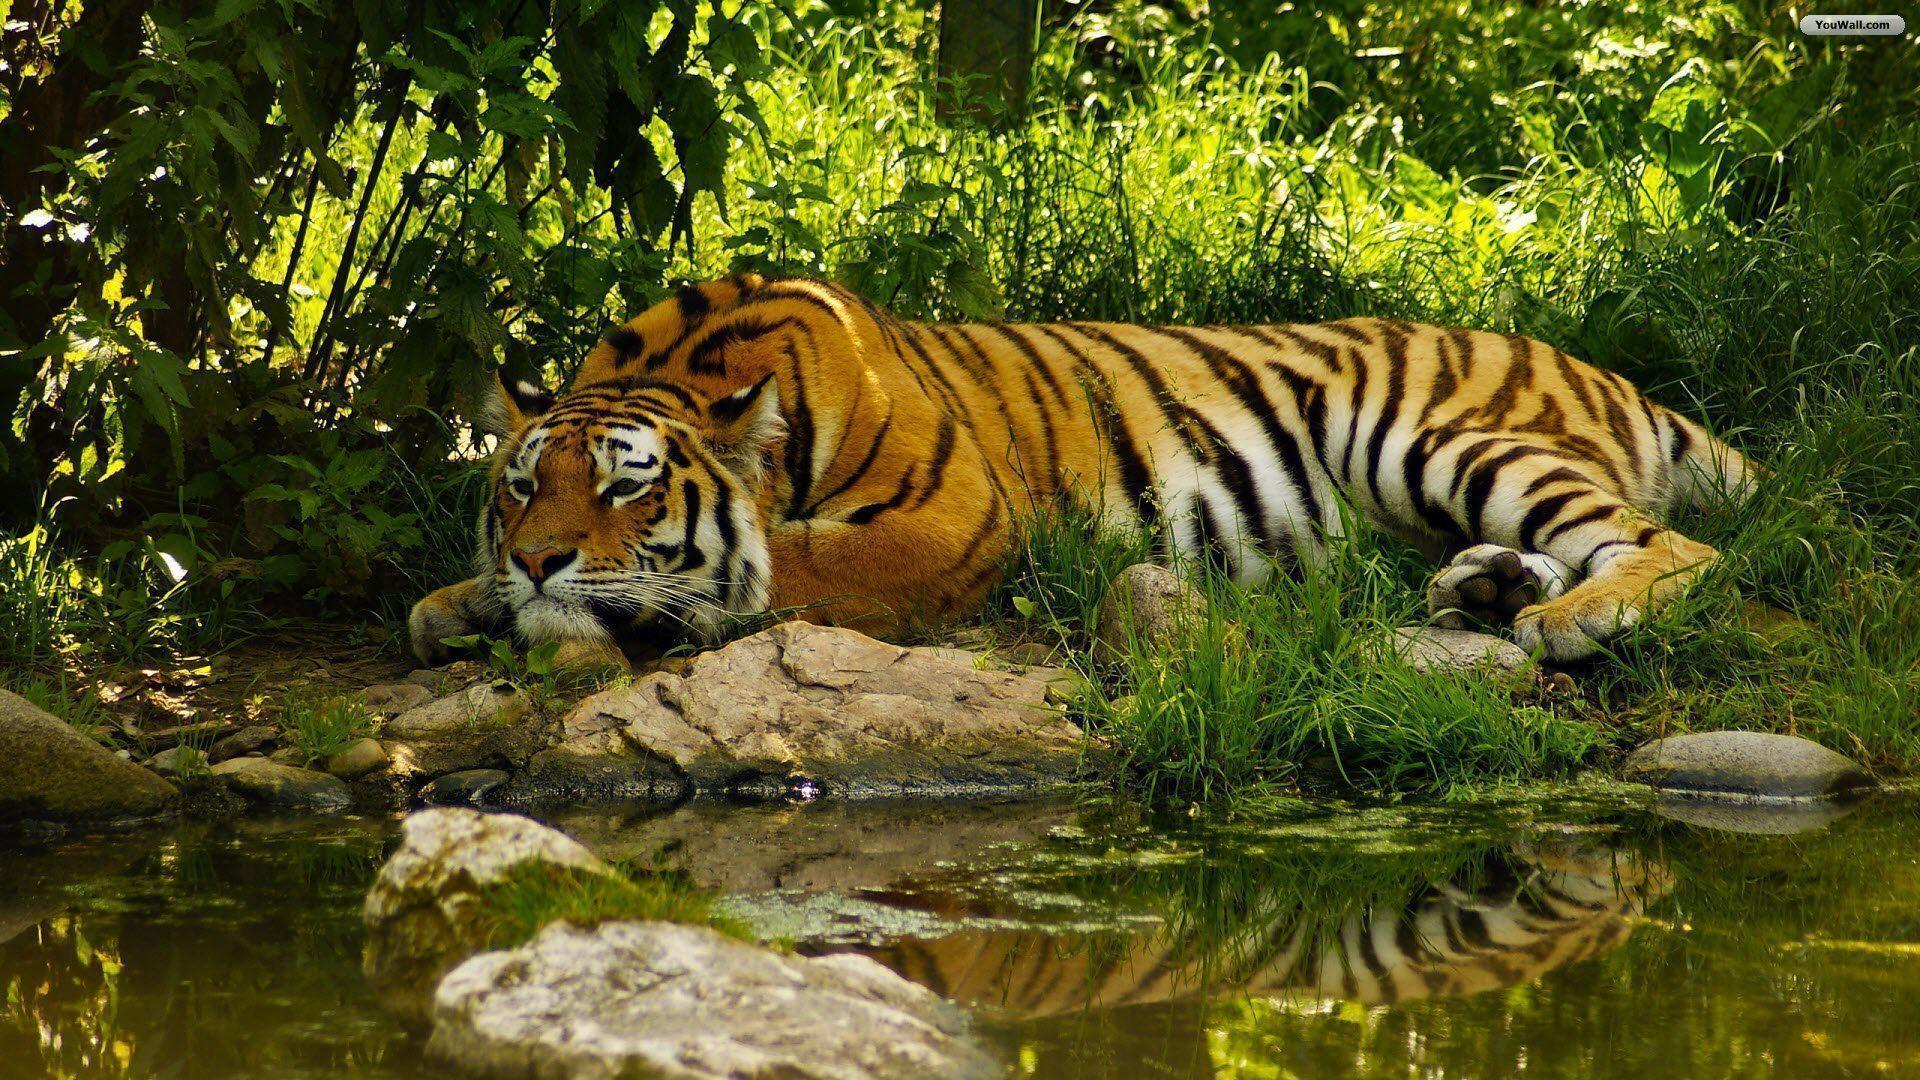 Tiger Wallpapers High Quality Wallpapers